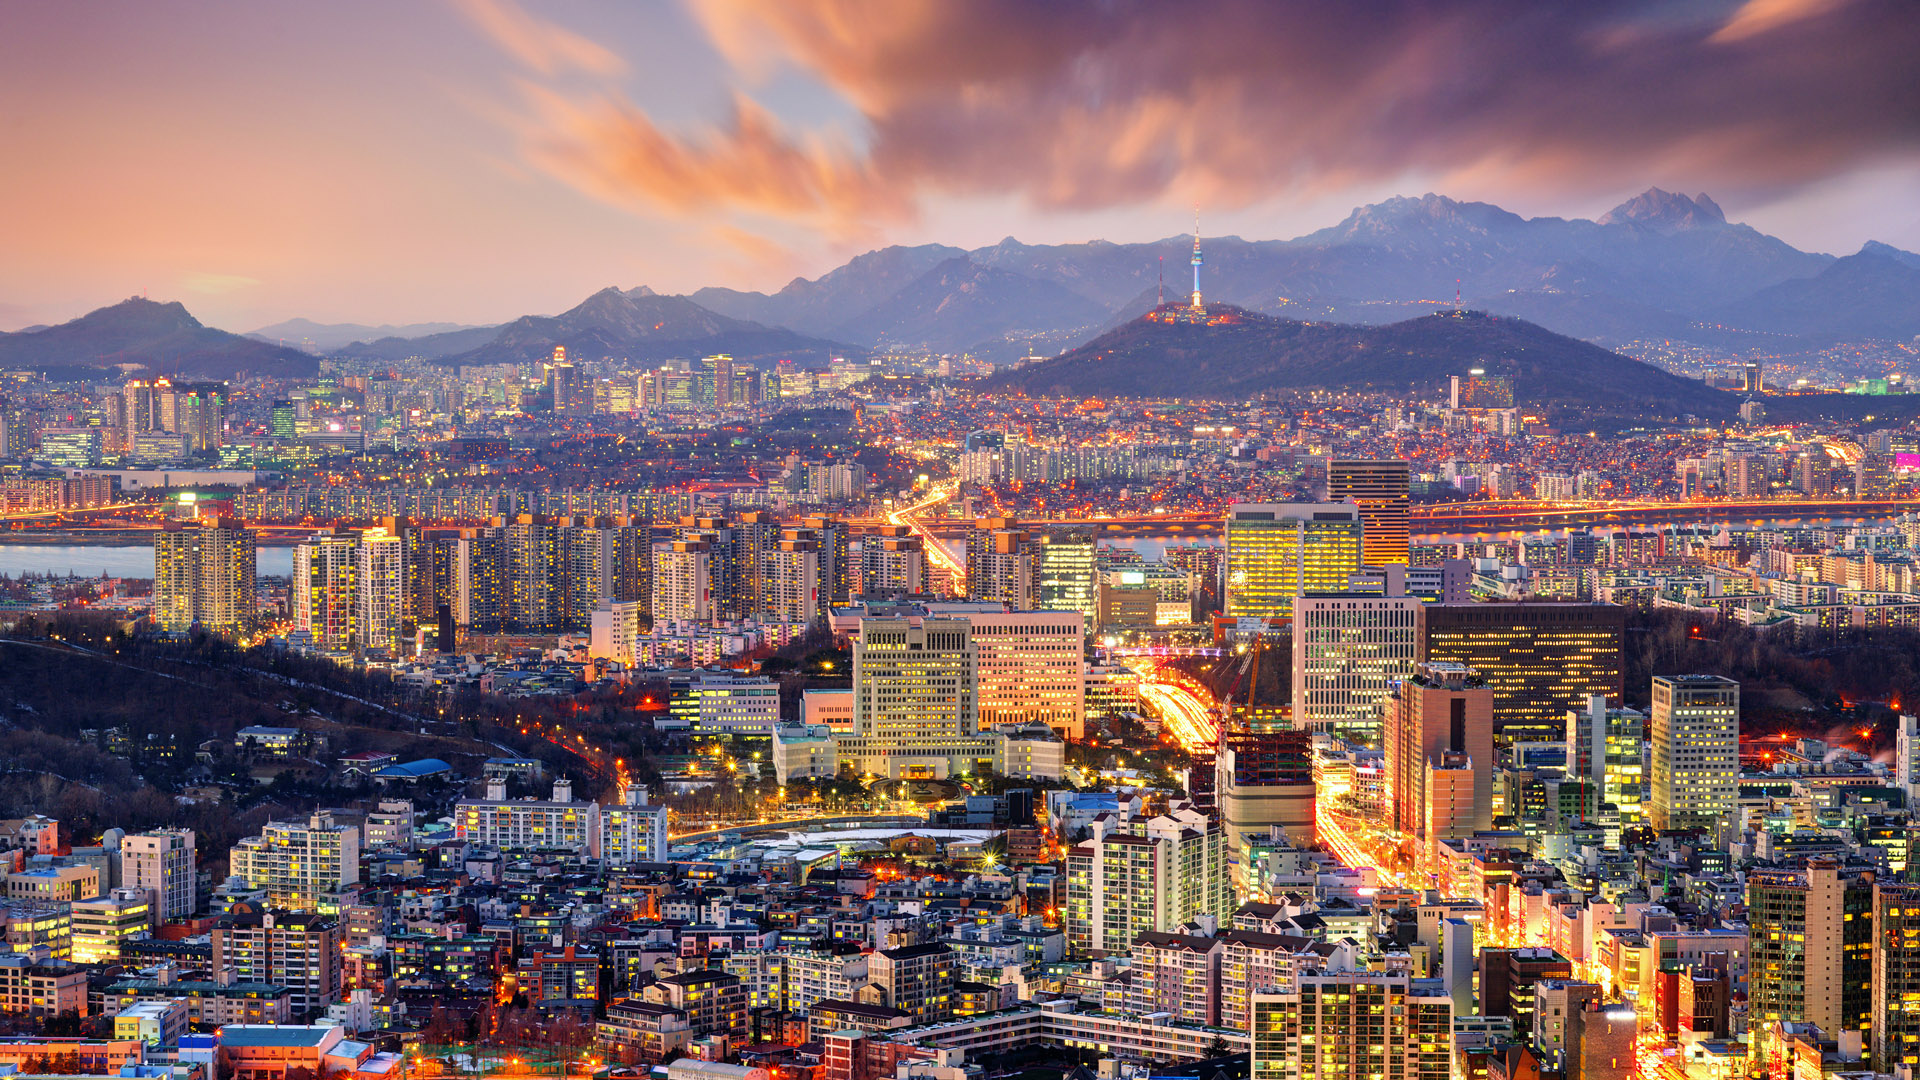 Seoul-city-evening-landscape.jpg